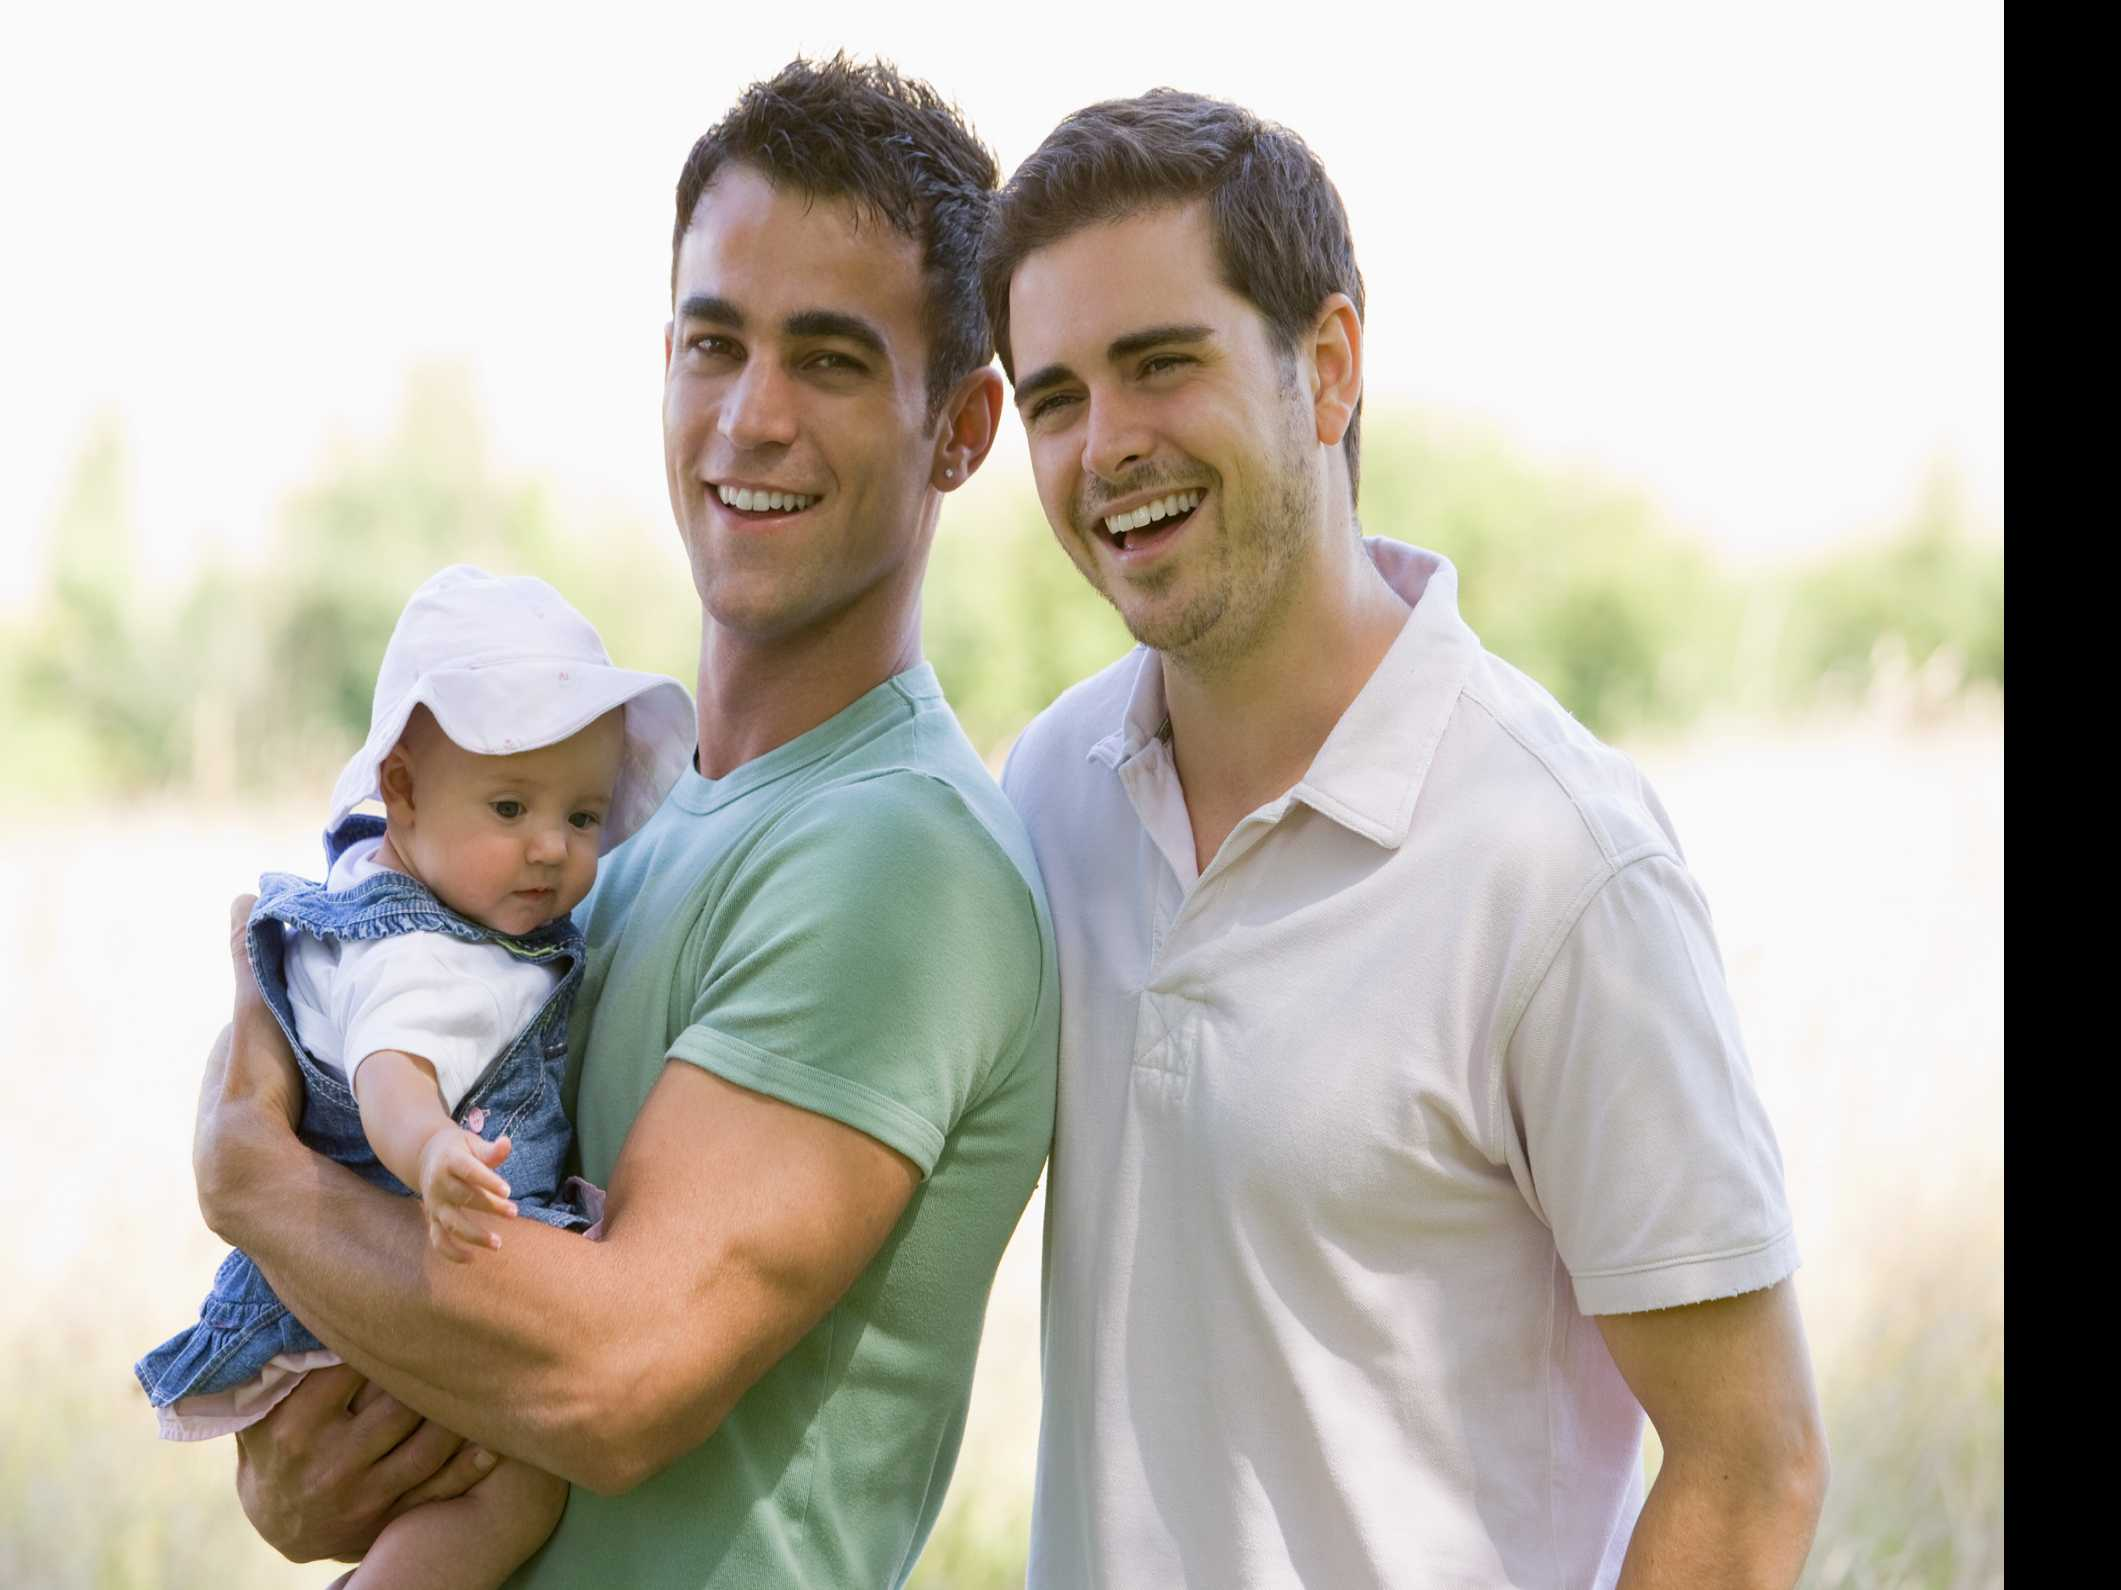 Lawmakers: Faith-Based Adoption Groups can Spurn Gay Couples